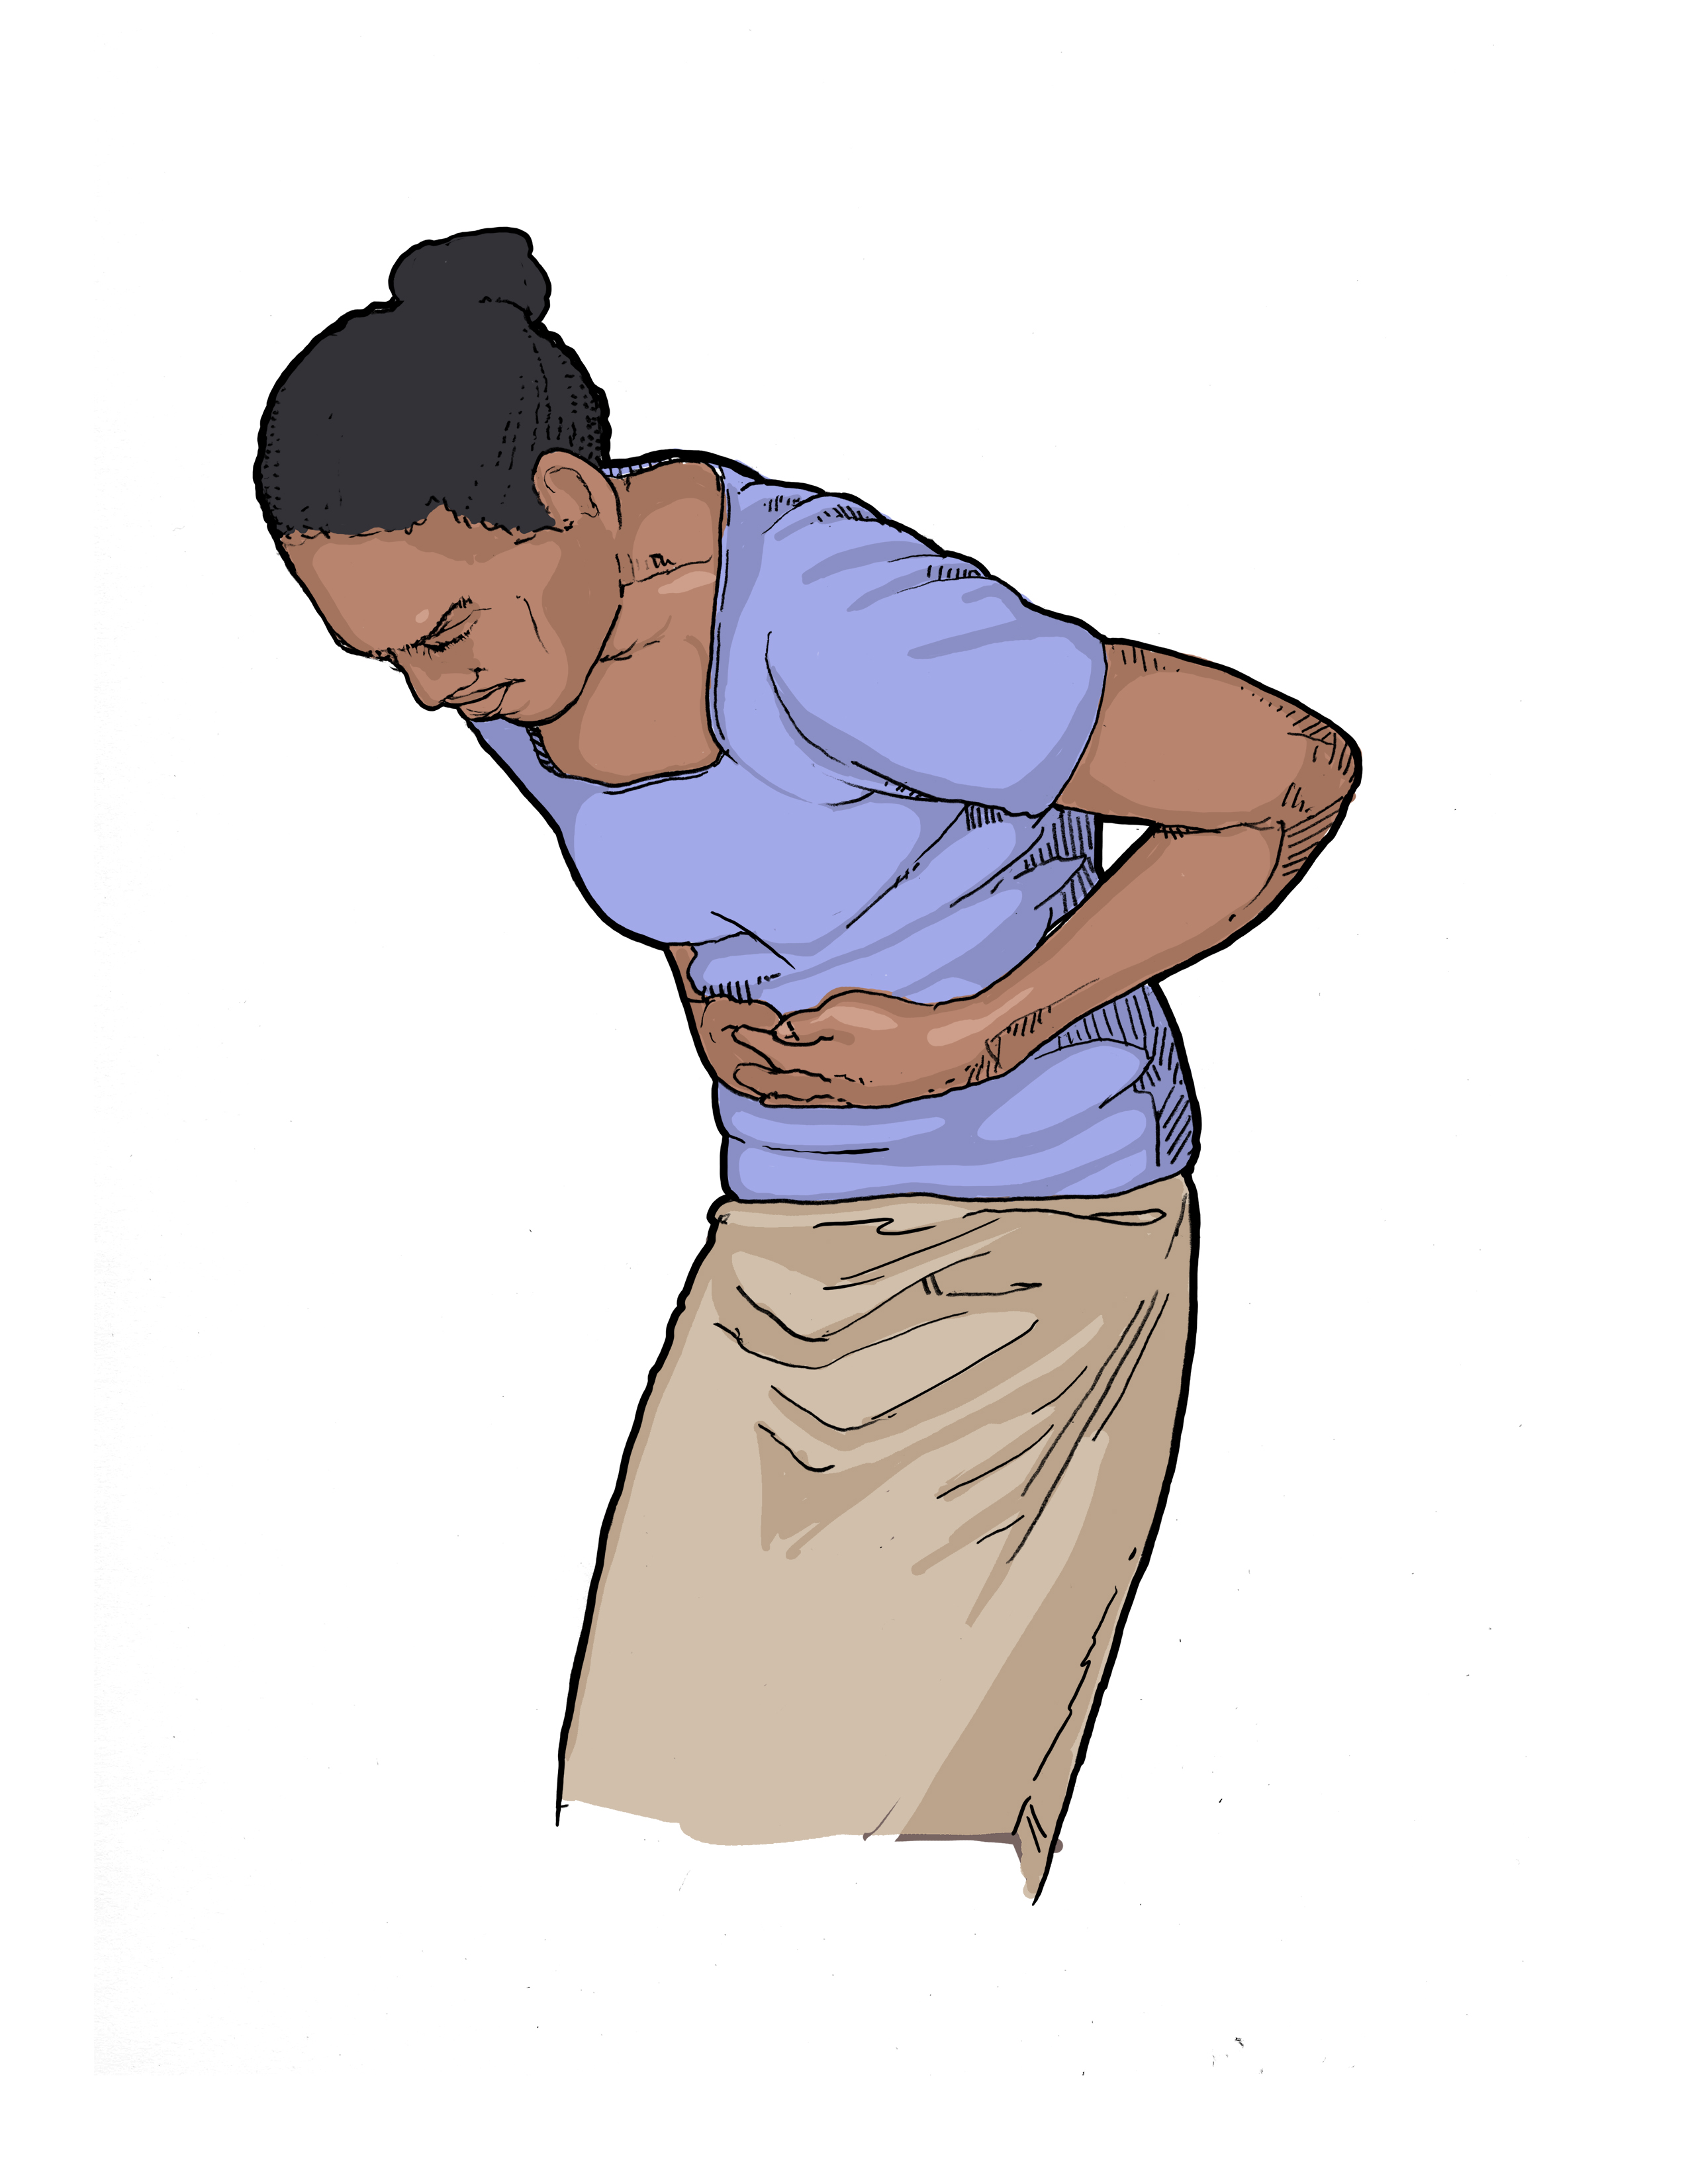 Symptoms: Stomach pain